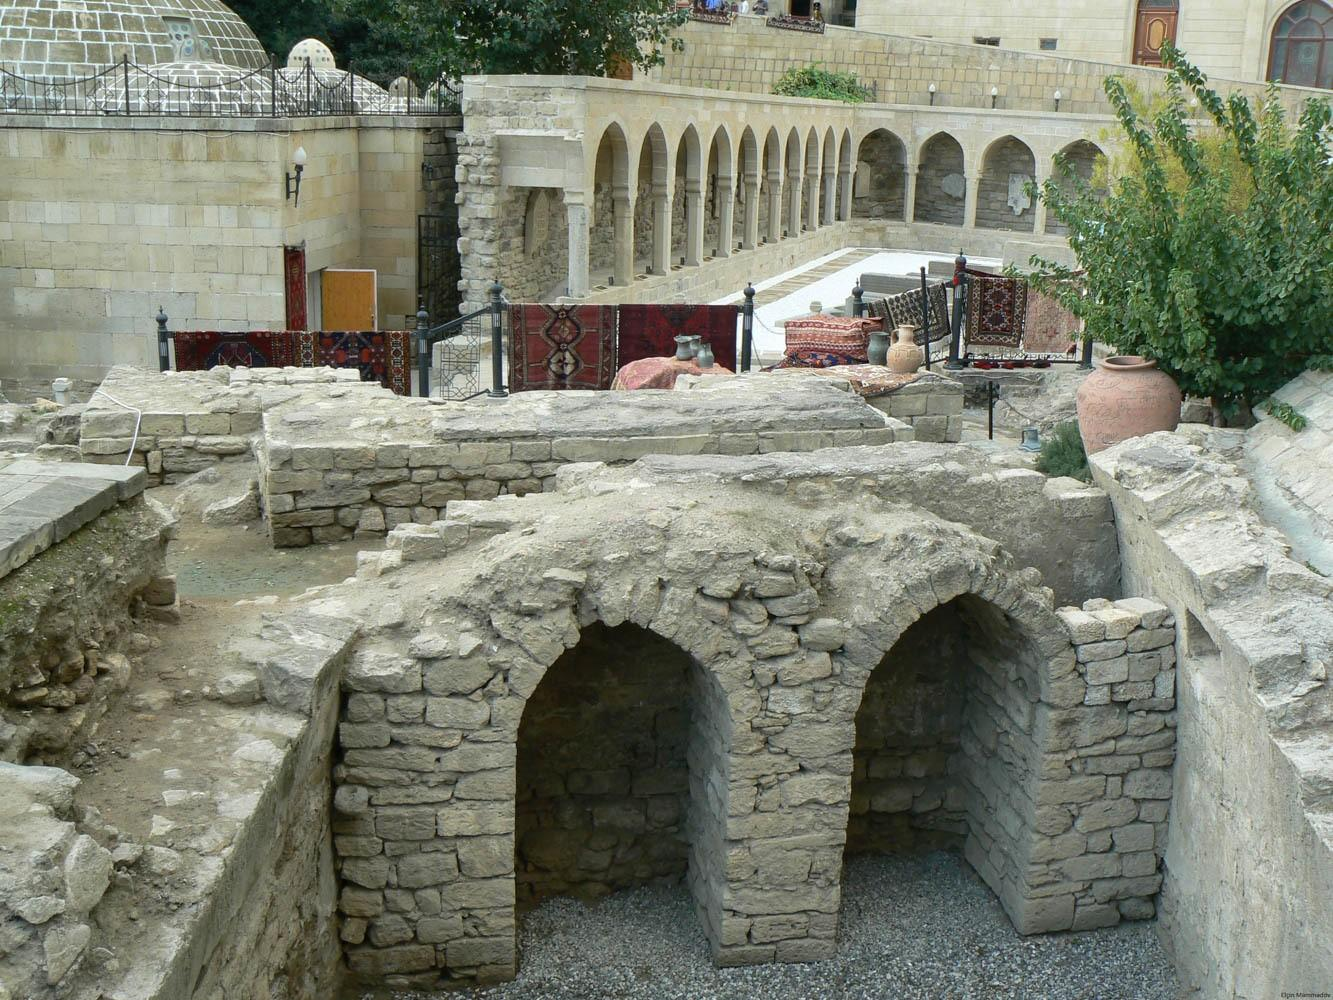 Minister of Culture of Azerbaijan urge entrepreneurs not to touch historical monuments